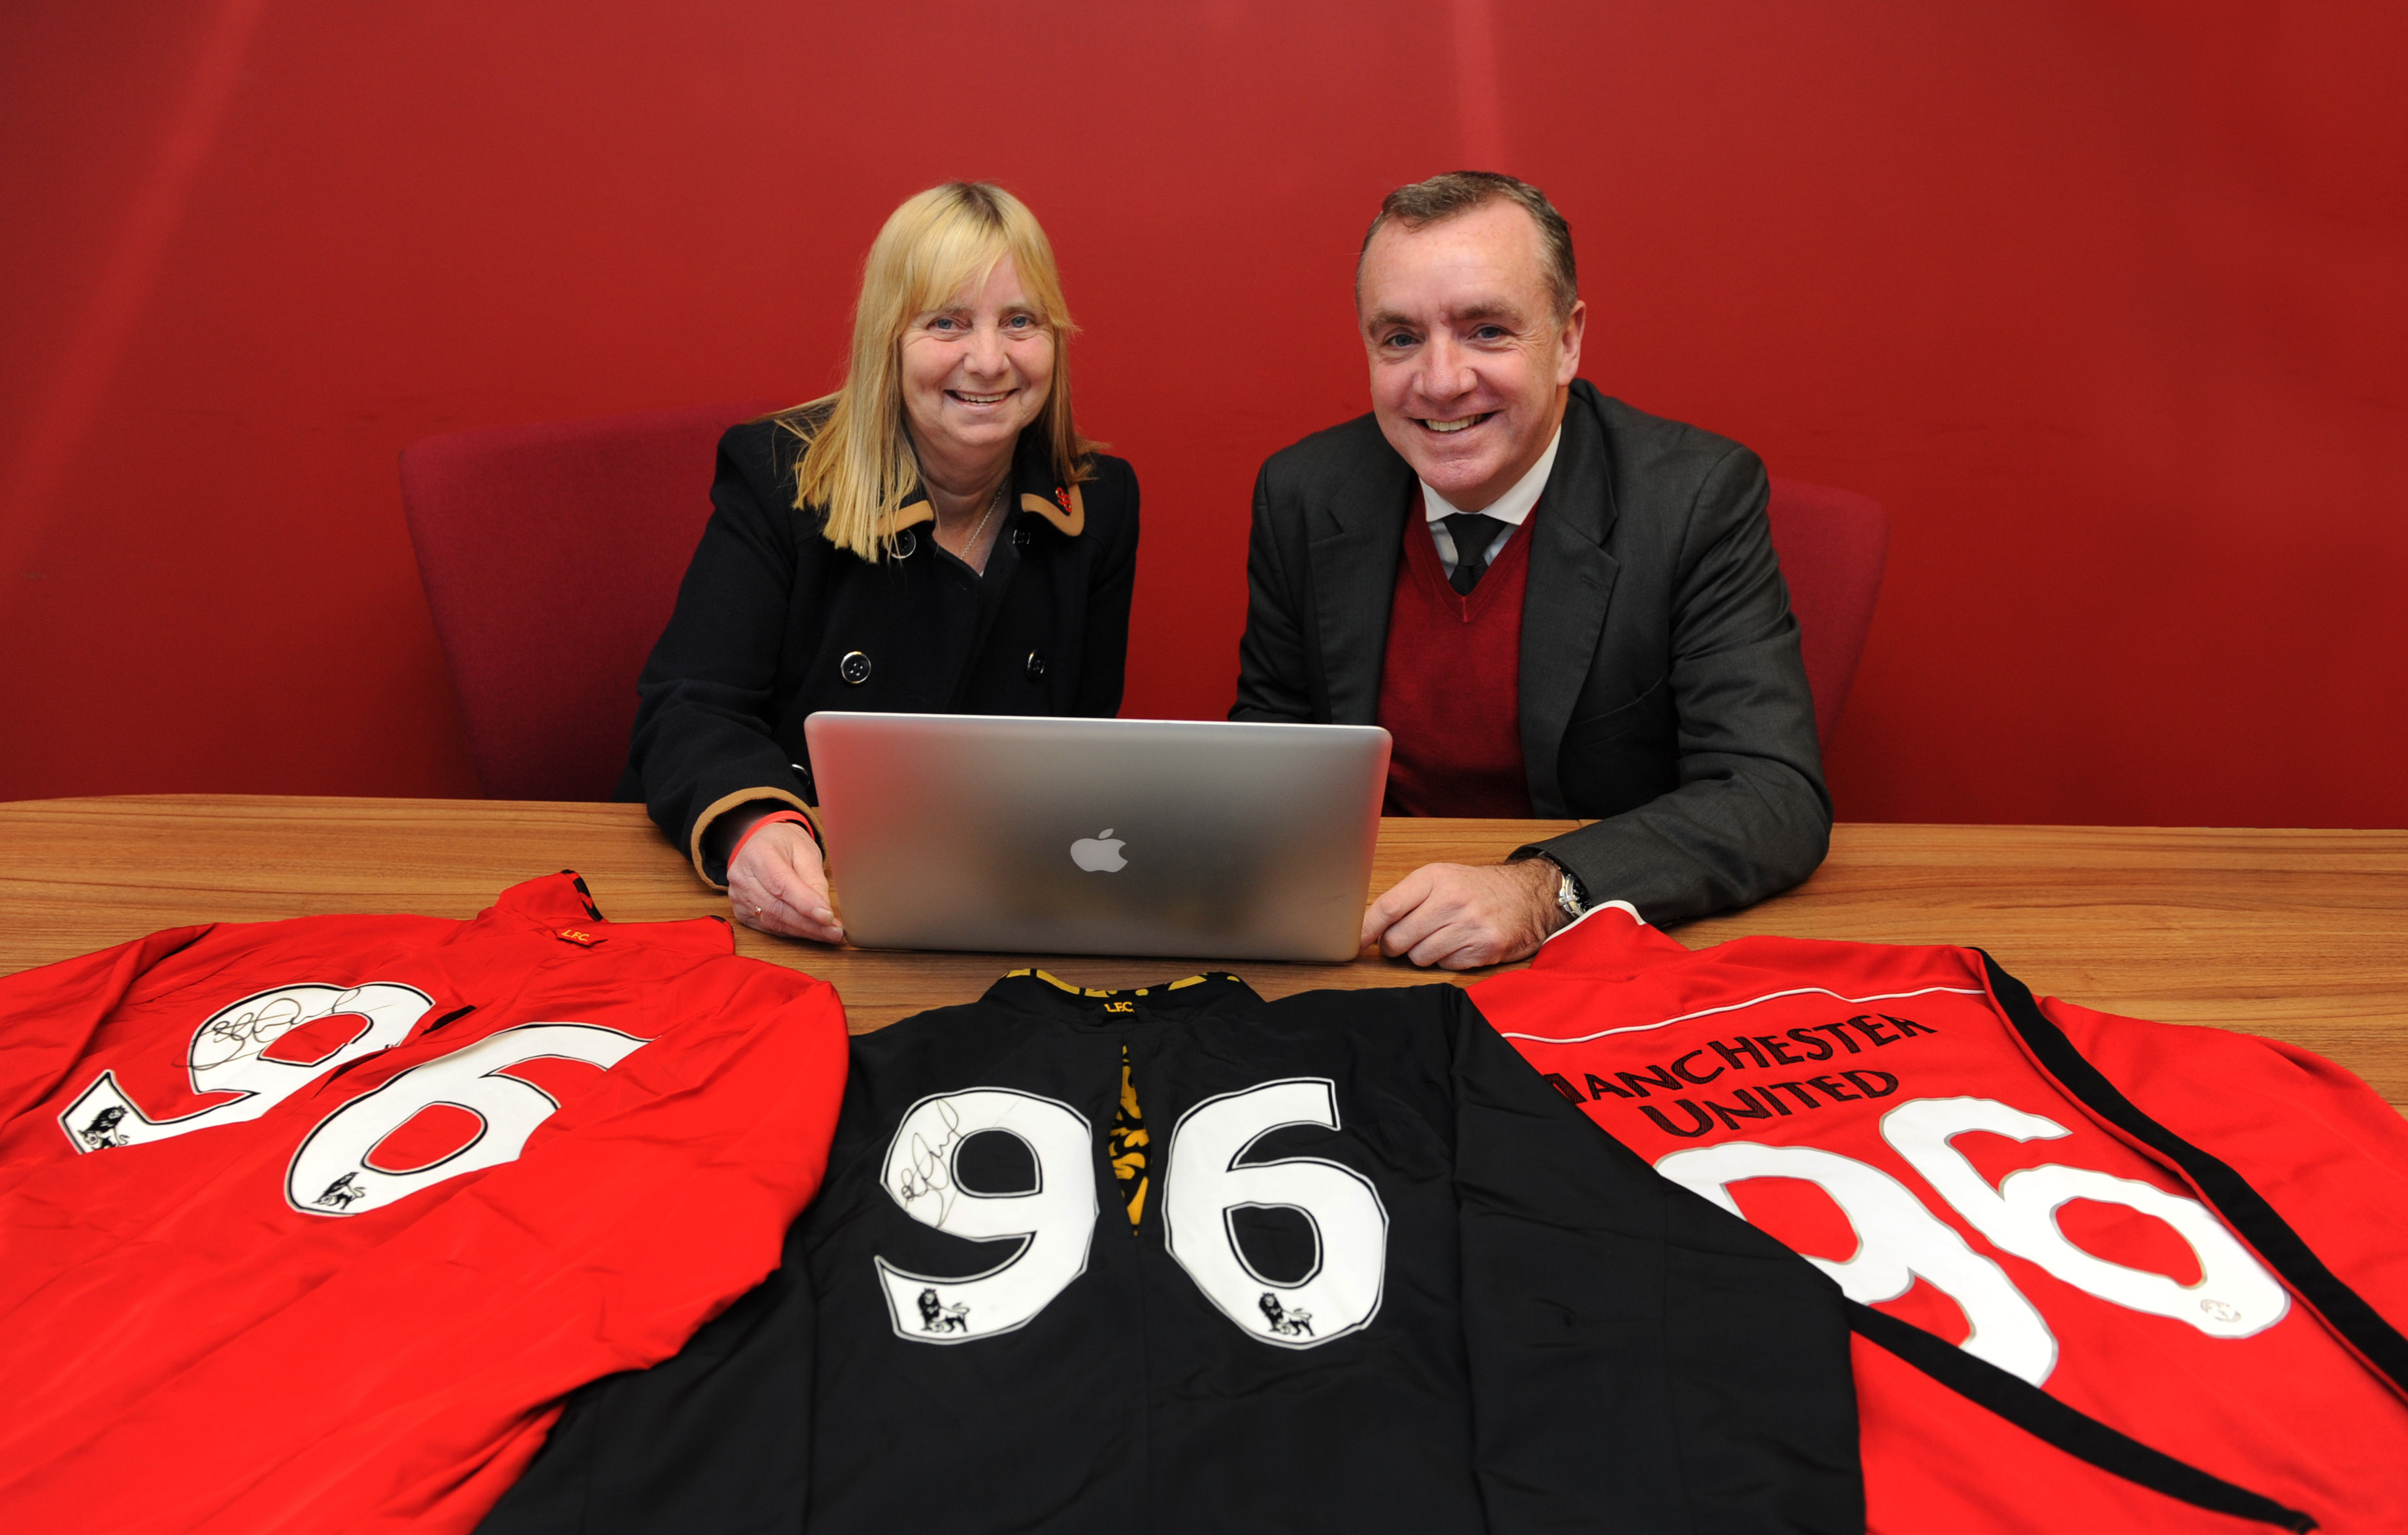 1 - Margaret Aspinall, Chair of Hillsborough Family Support Group and Ian Ayre, Liverpool FC's Managing Director launching the auction, with three of the '96' jackets